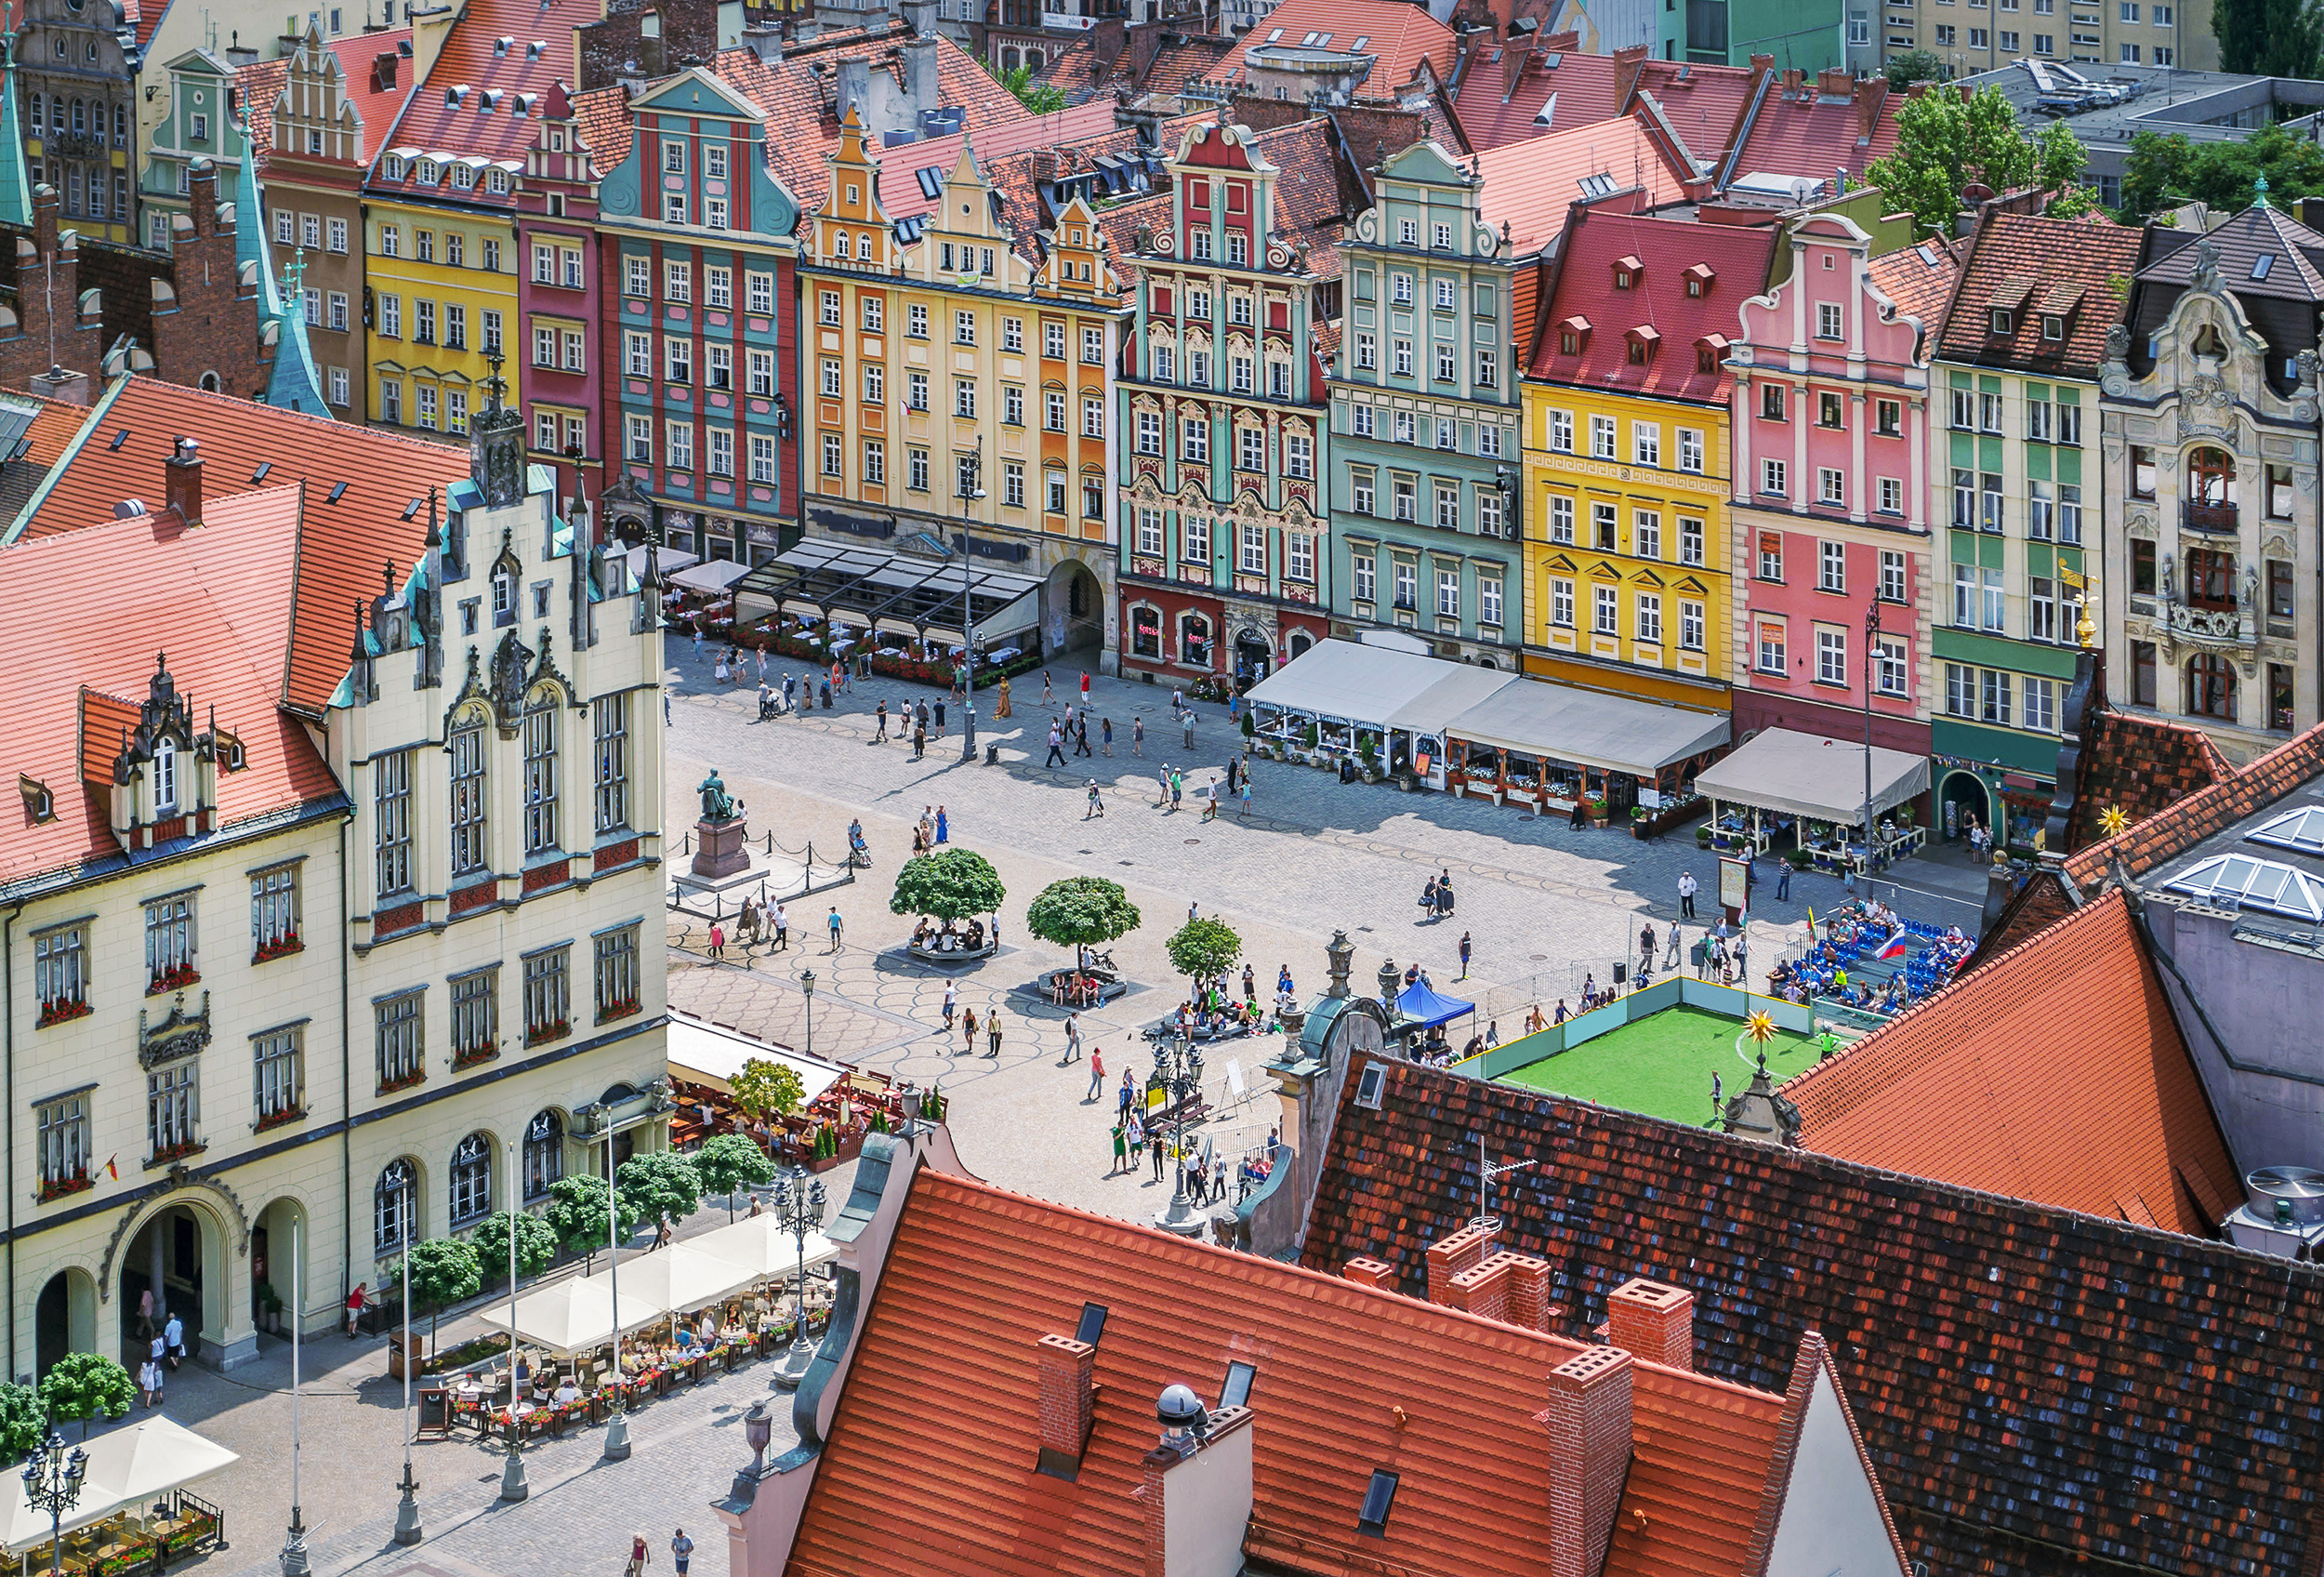 Town square in Wroclaw